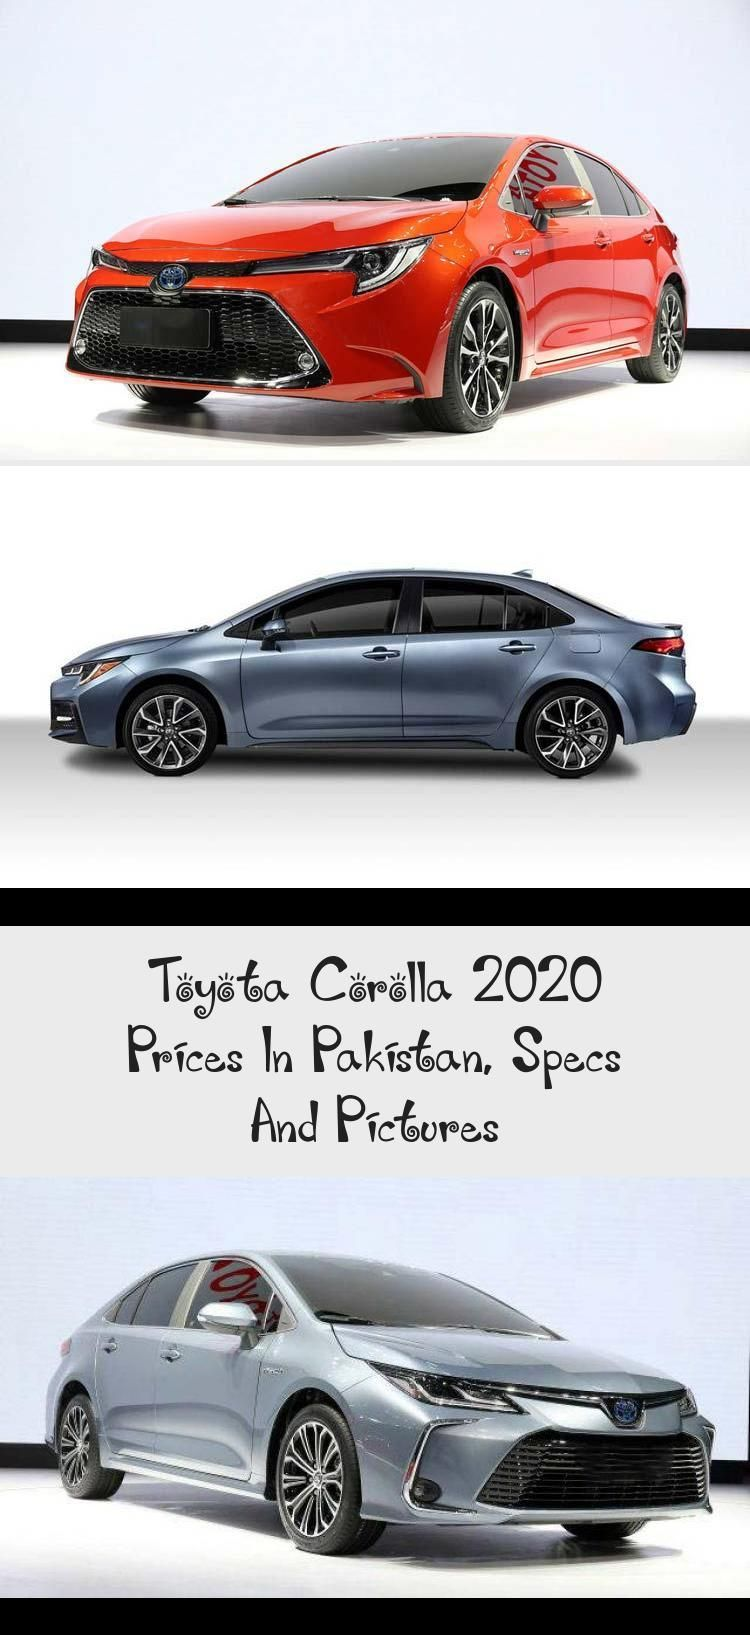 Toyota Corolla 2020 Prices In Pakistan Specs And Pictures Cars In 2020 Car Rental Company Toyota Corolla Best Car Rental